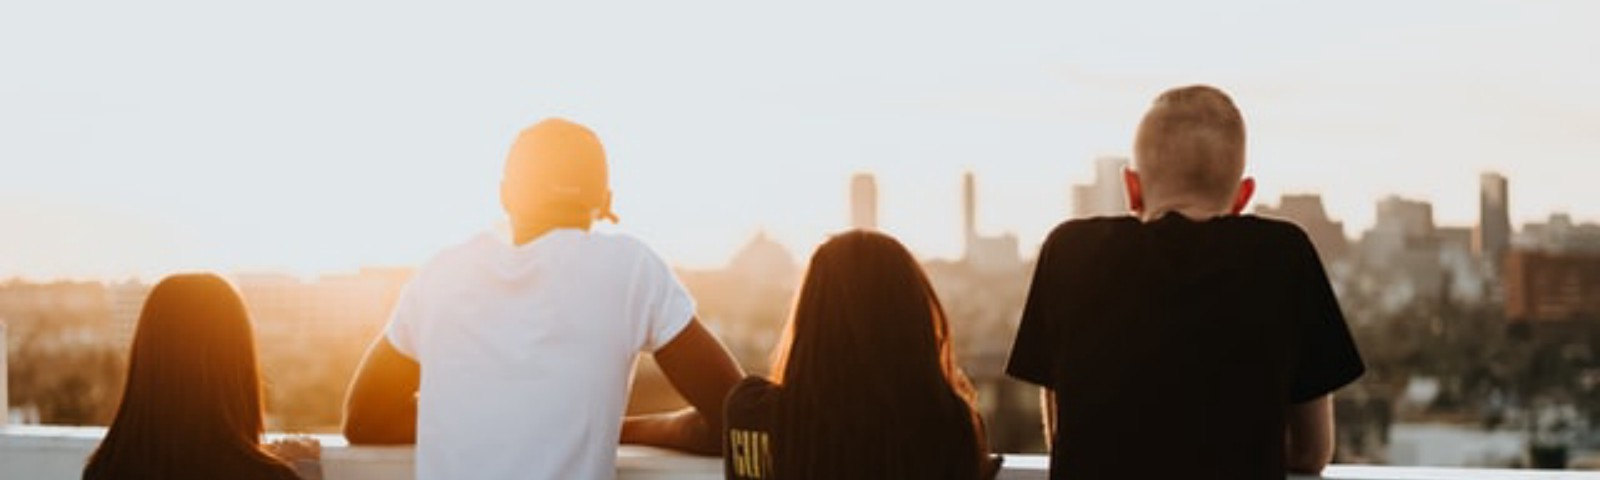 Four teenagers looking out at the city